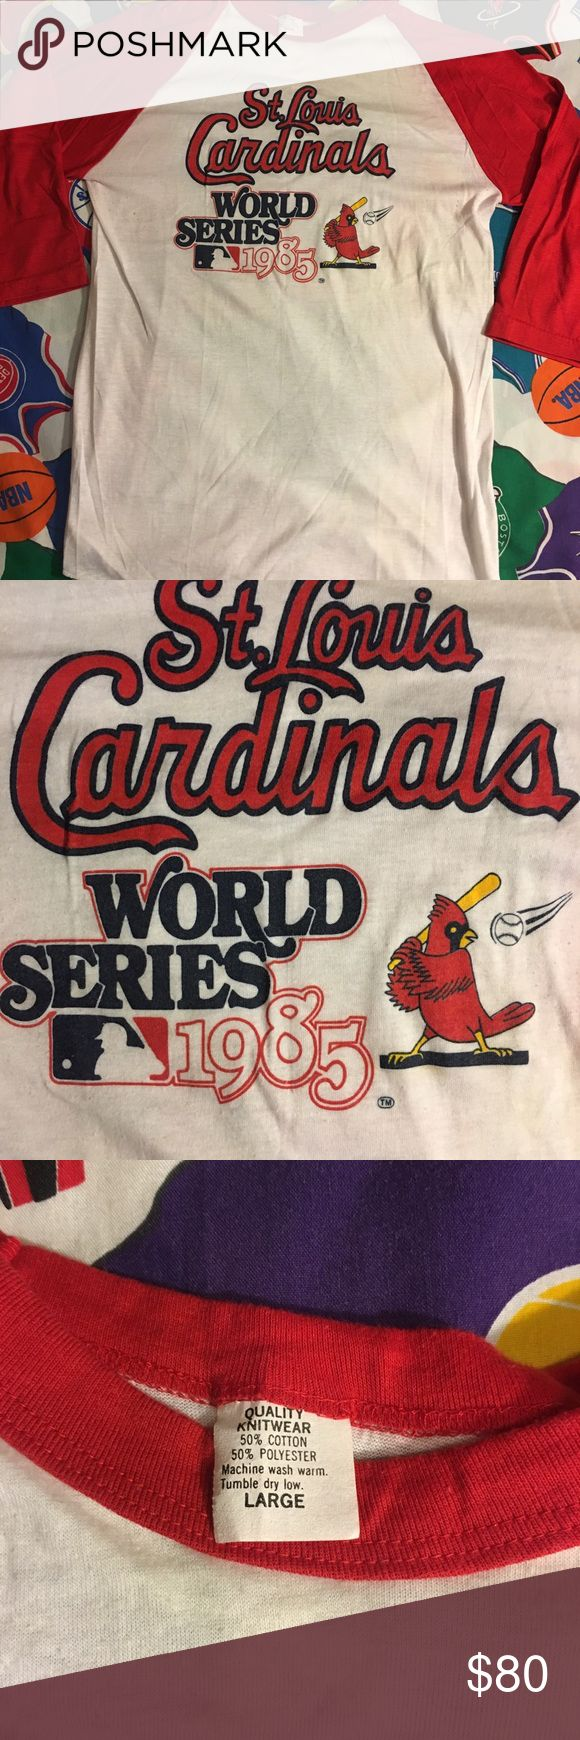 Vintage 1985 STL Cardinals World Series shirt Vintage 1985 STL Cardinals World Series shirt women's size Large was purchased at the stadium can't find another one like it. Excellent condition for its age has some pilling as can be seen in pics but should be easily taken care of quality knitwear Tops Tees - Short Sleeve